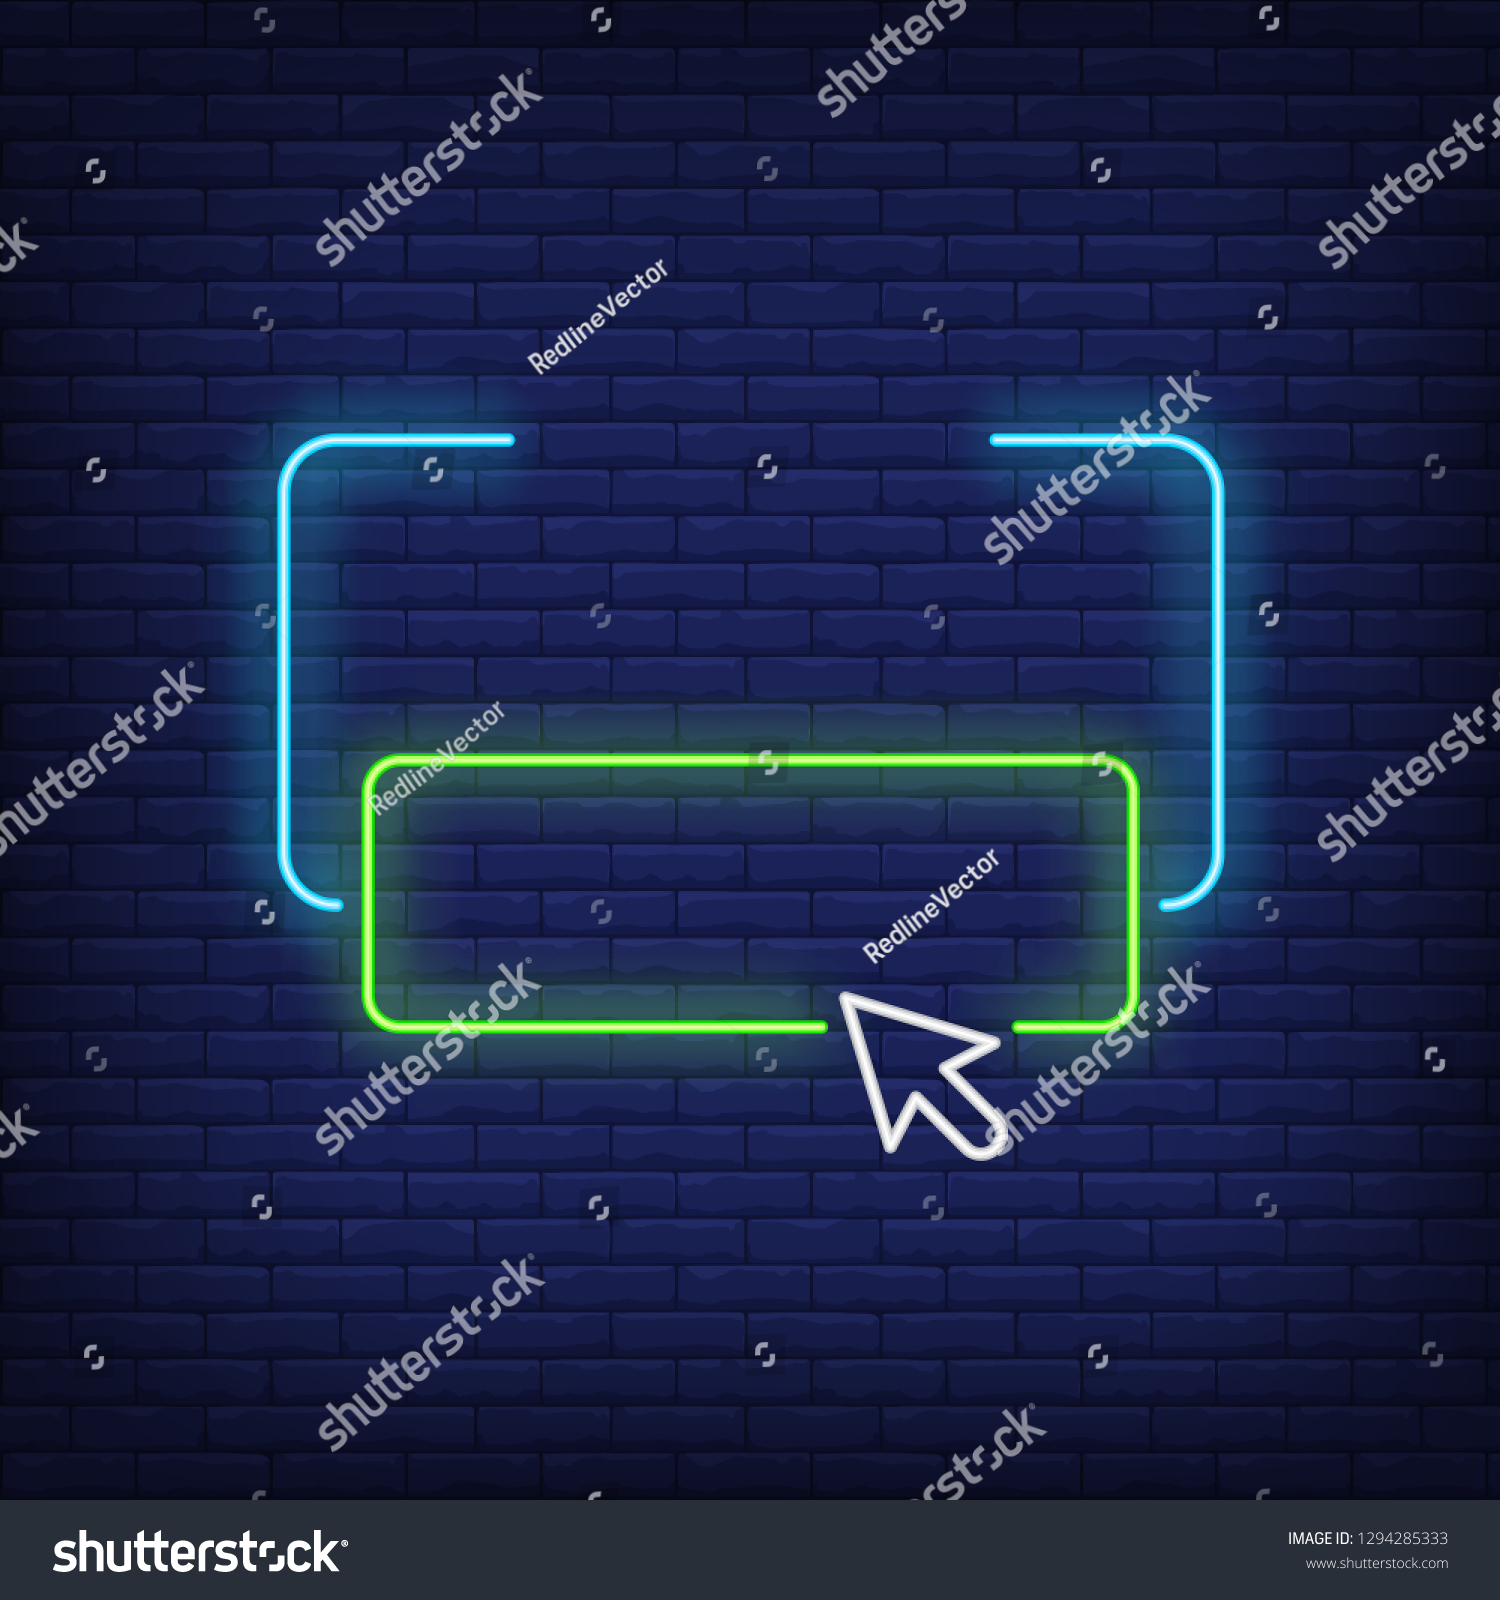 hight resolution of frame button and arrow neon sign user interface icons design night bright neon